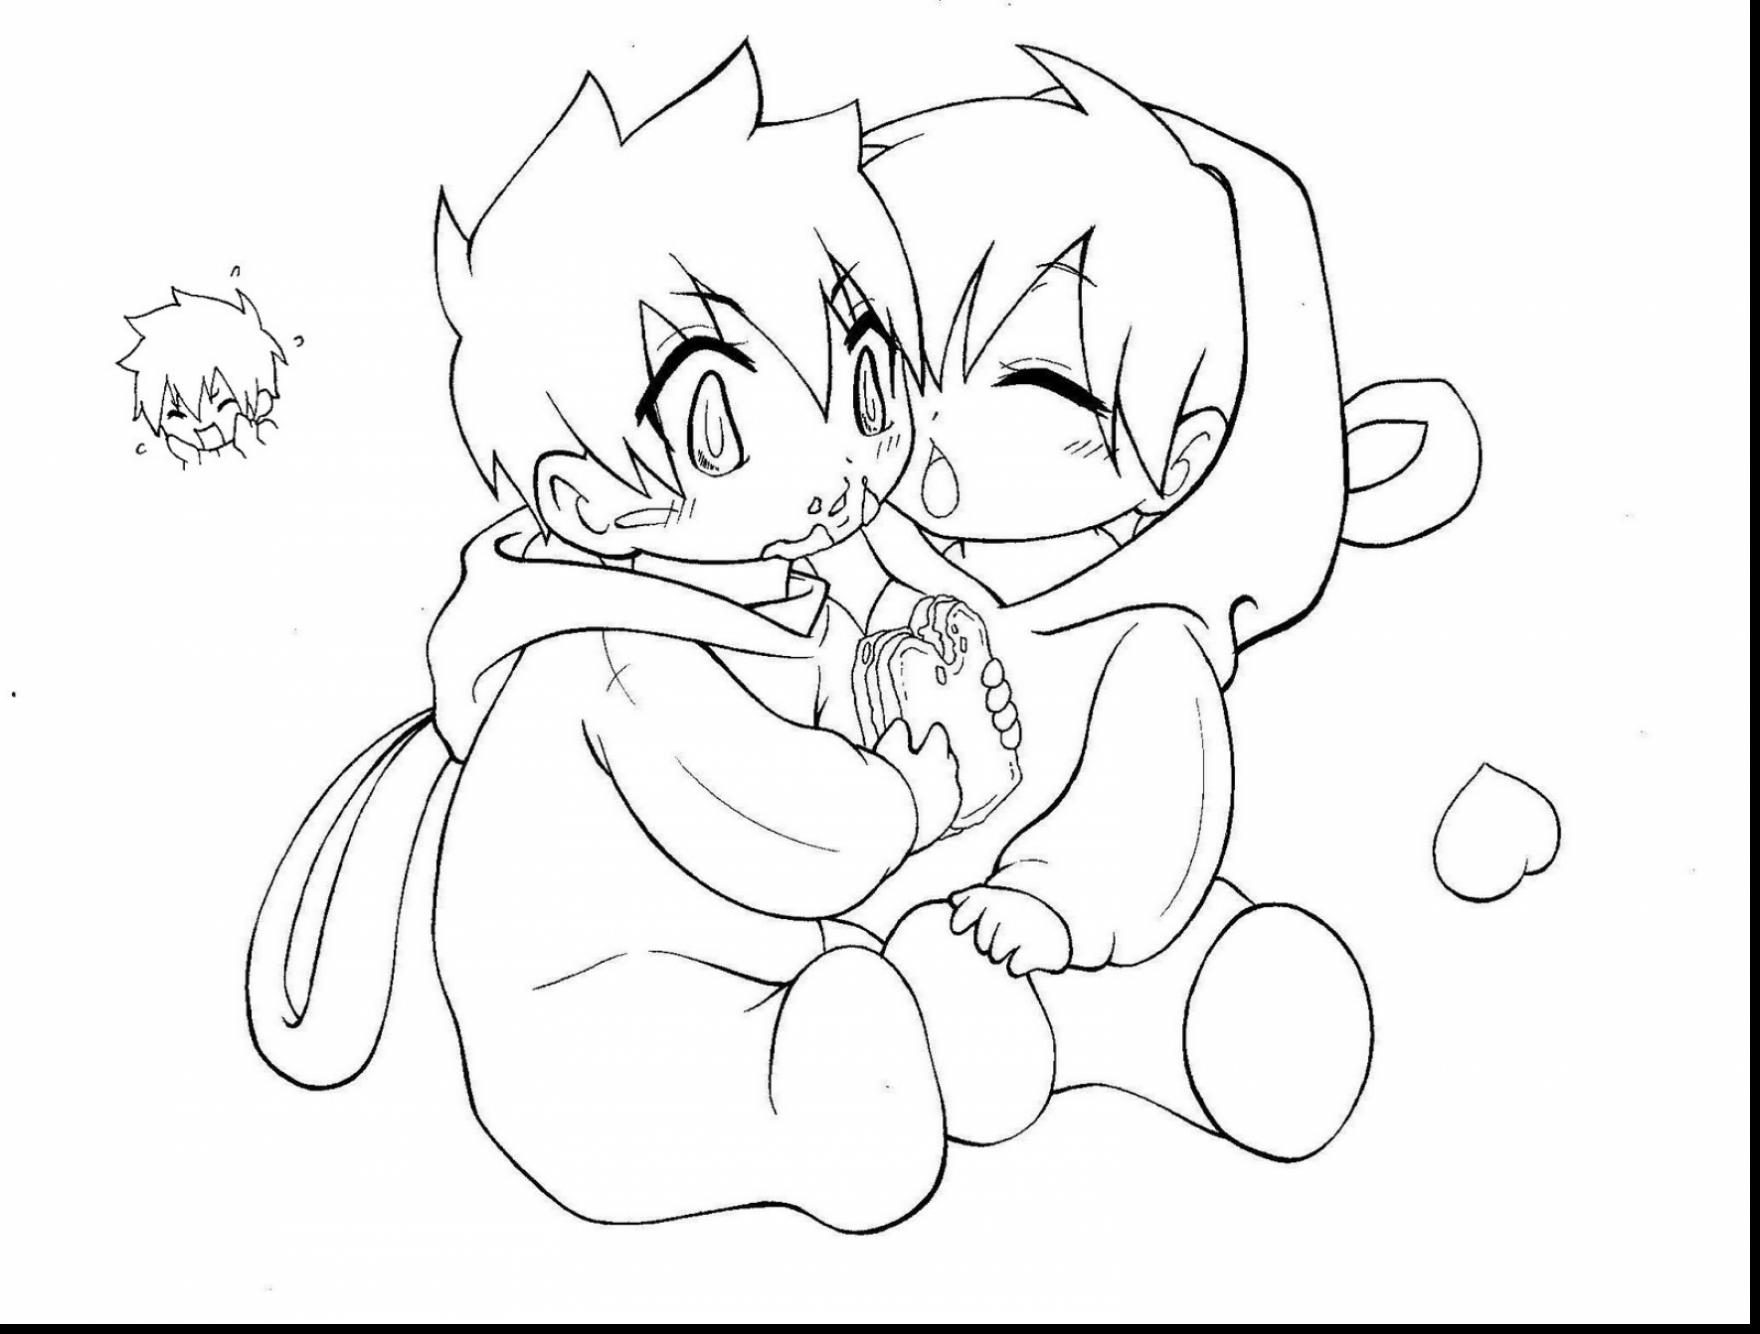 anime coloring pages easy get this easy printable chibi coloring pages for children pages anime coloring easy